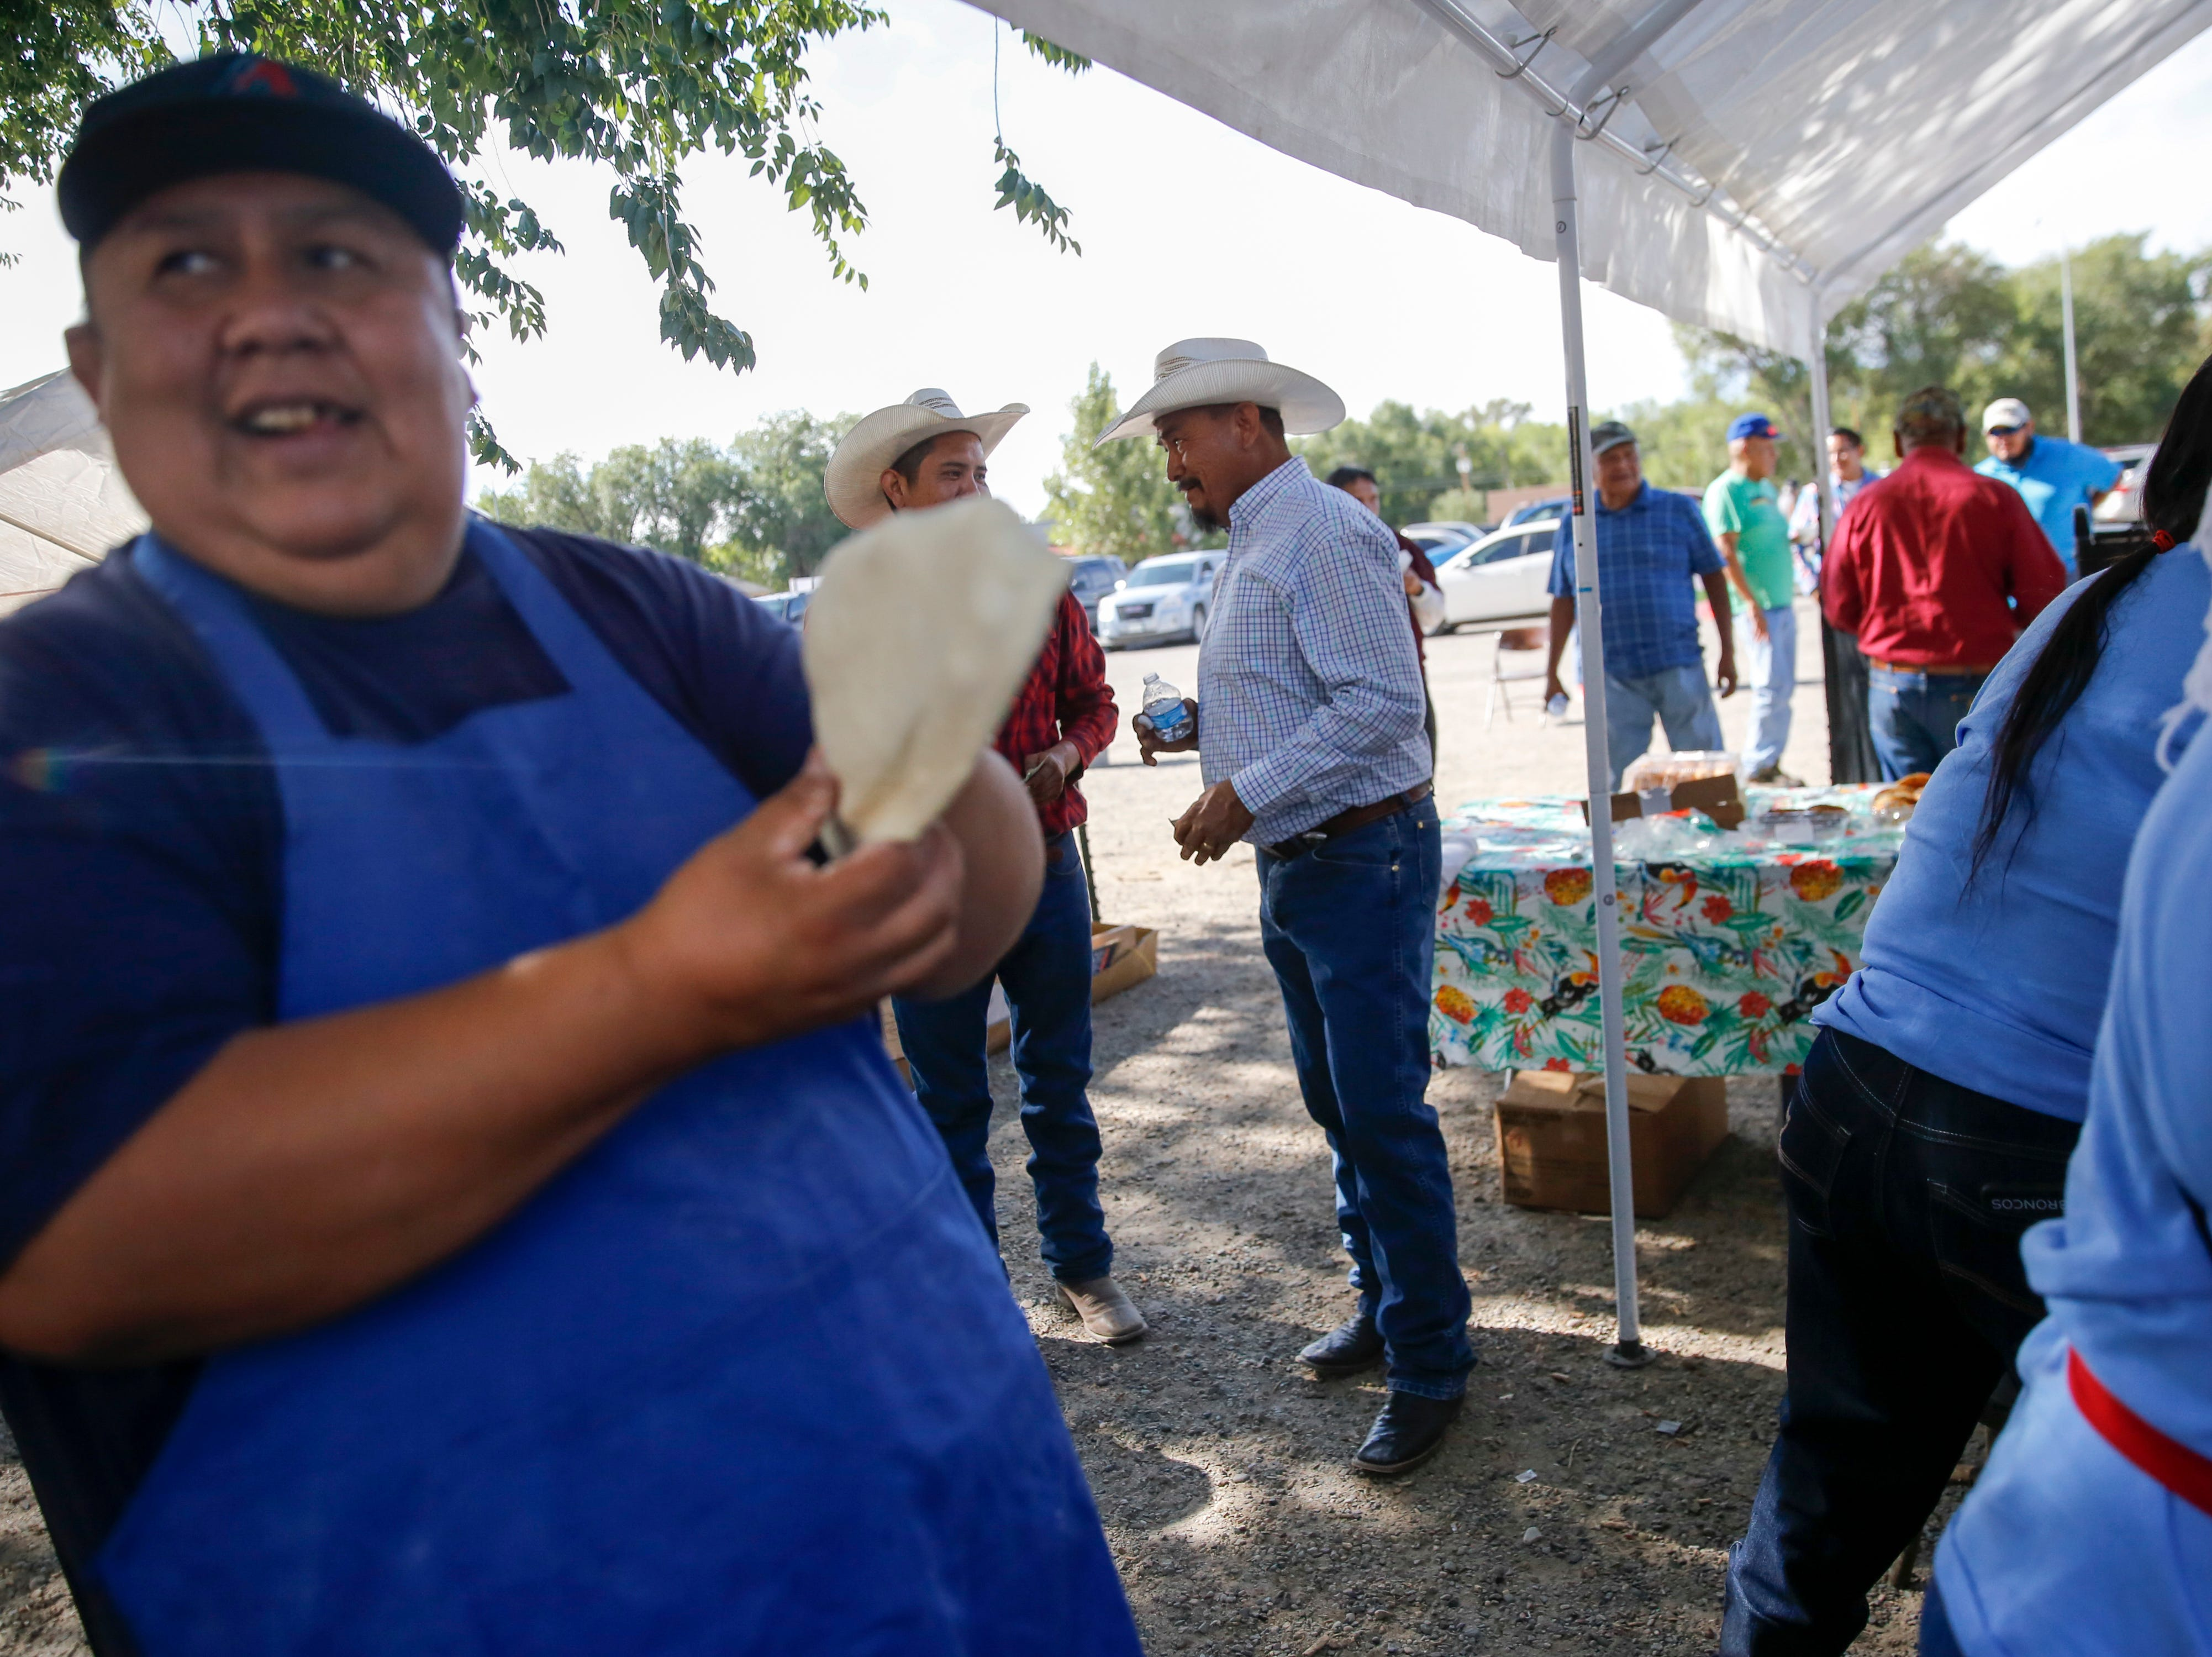 Navajo Nation Presidential candidate Tom Chee, center, talks with voters, Tuesday, Aug. 28, 2018 at the Shiprock Chapter House.